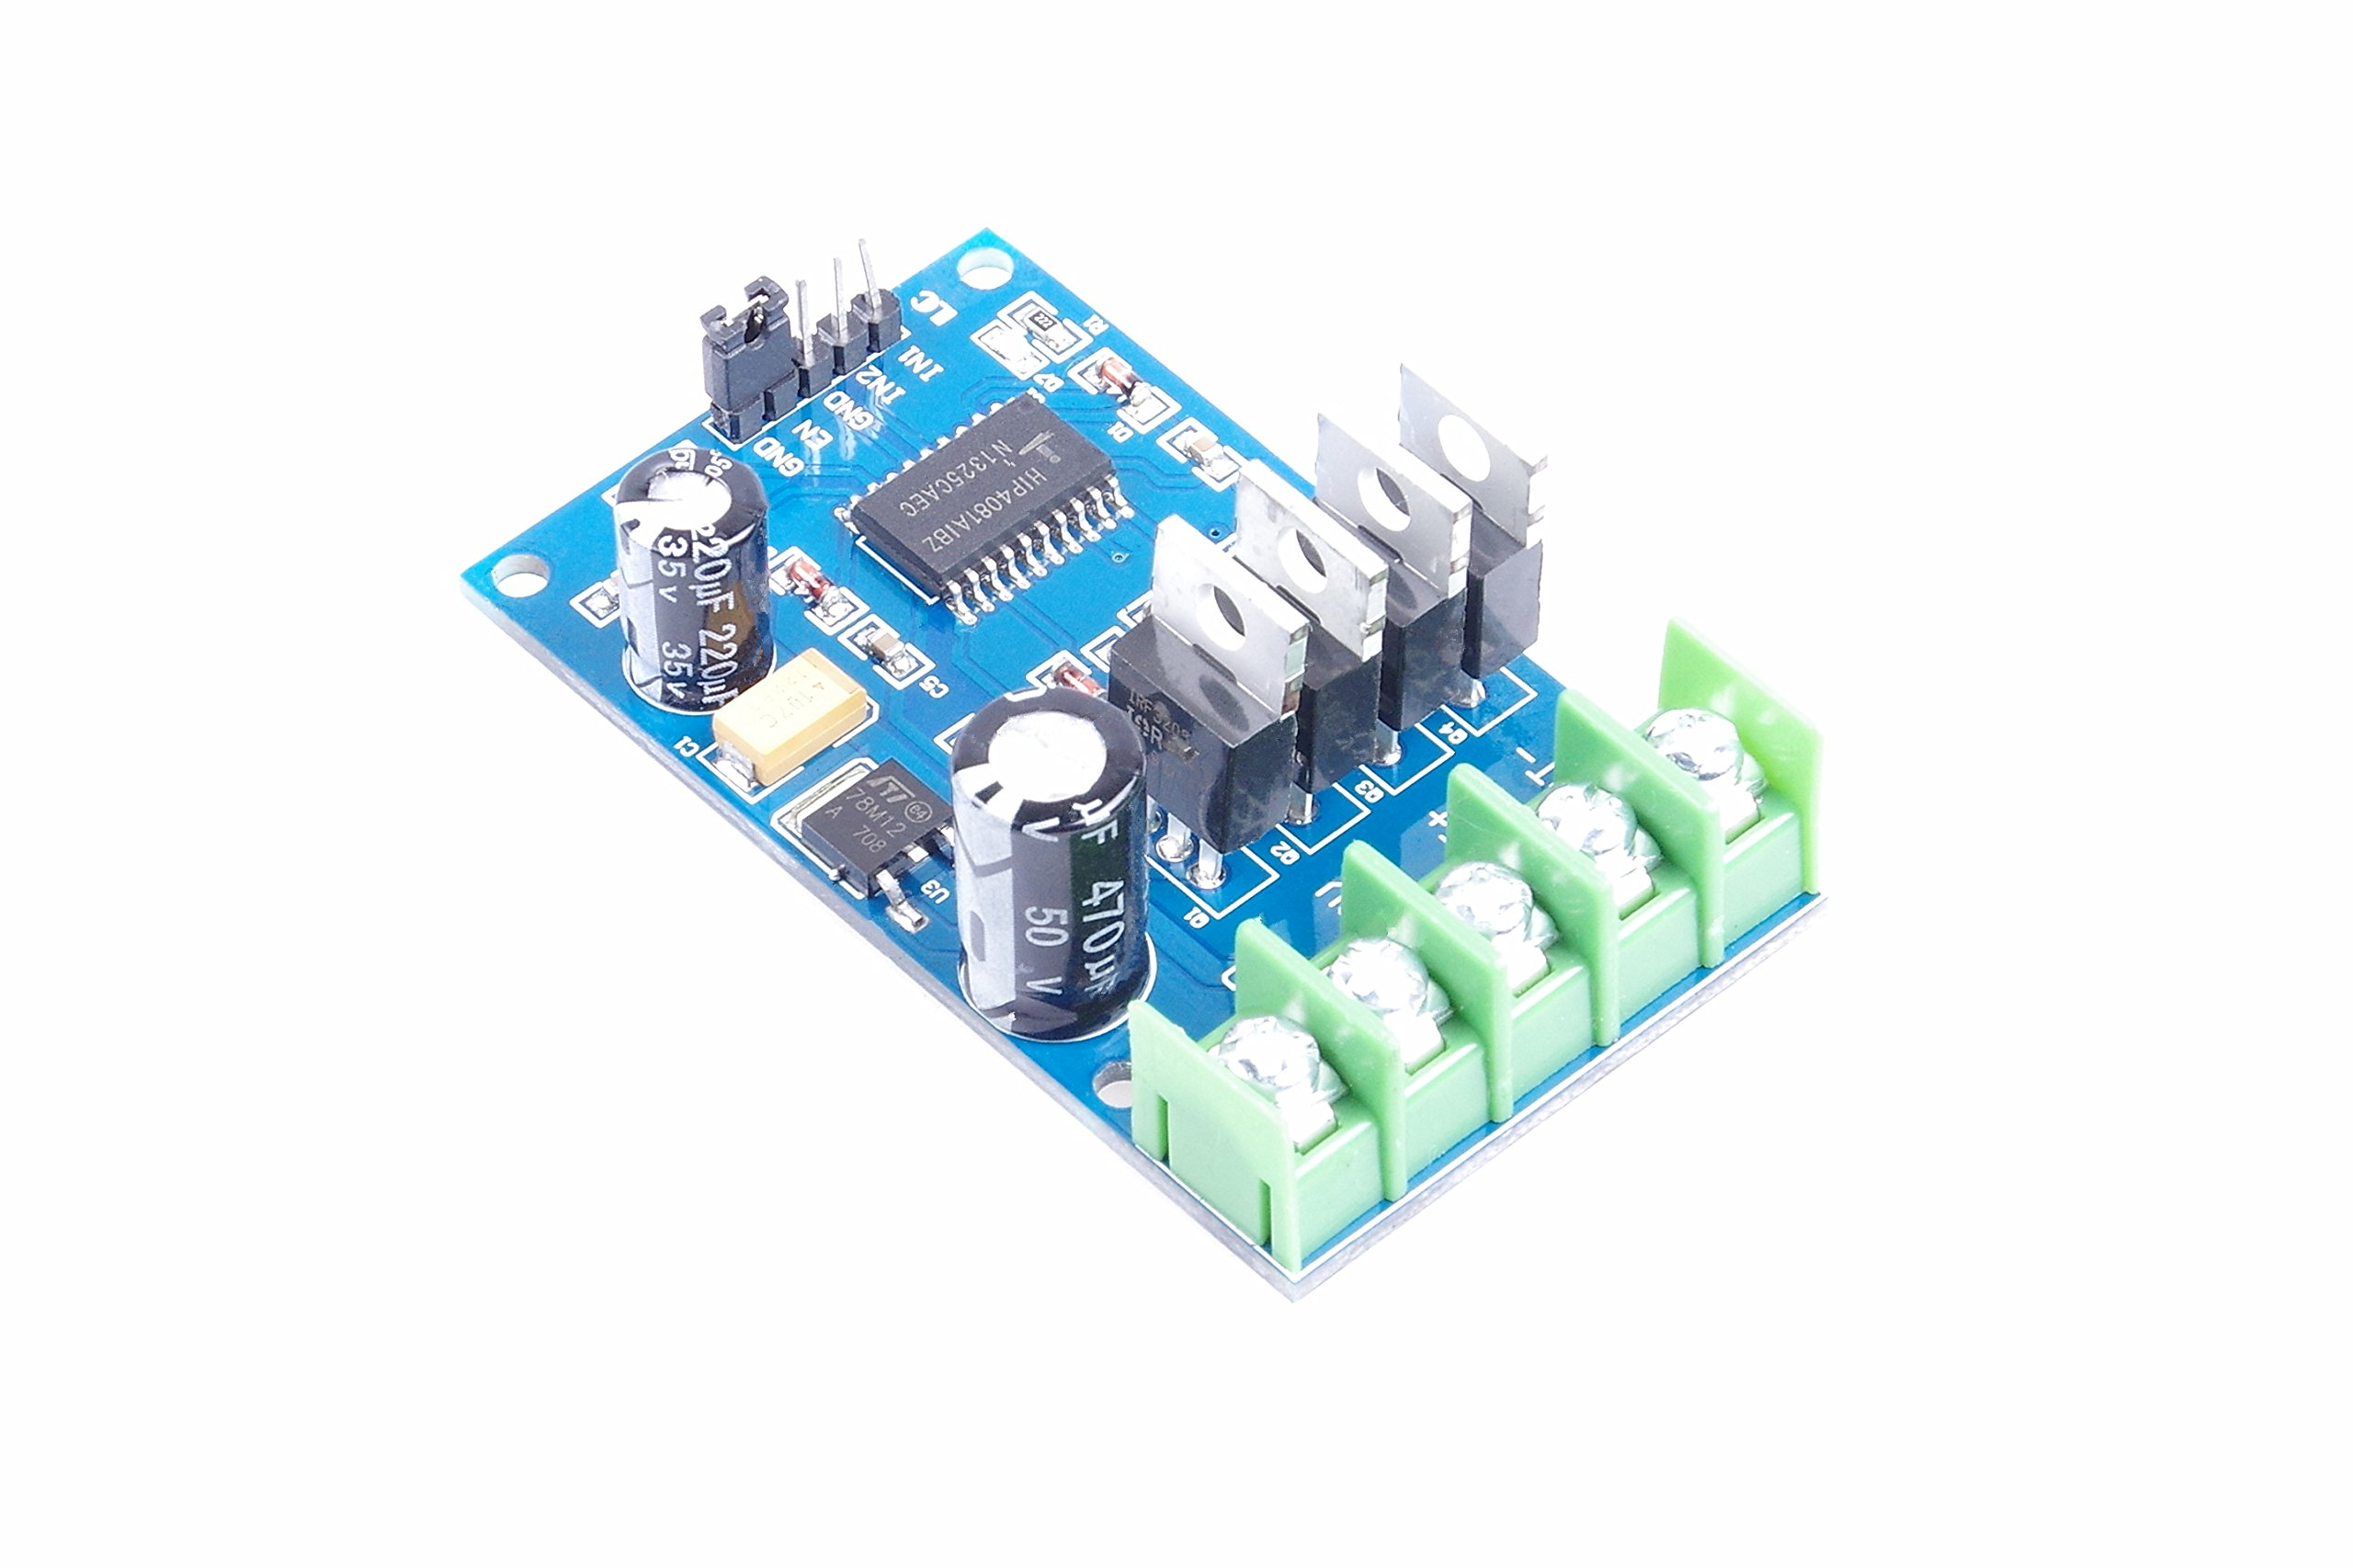 170W High Power H-Bridge Drive Board NMOS With Brakes Forward And Reverse Full-Duty One Piece